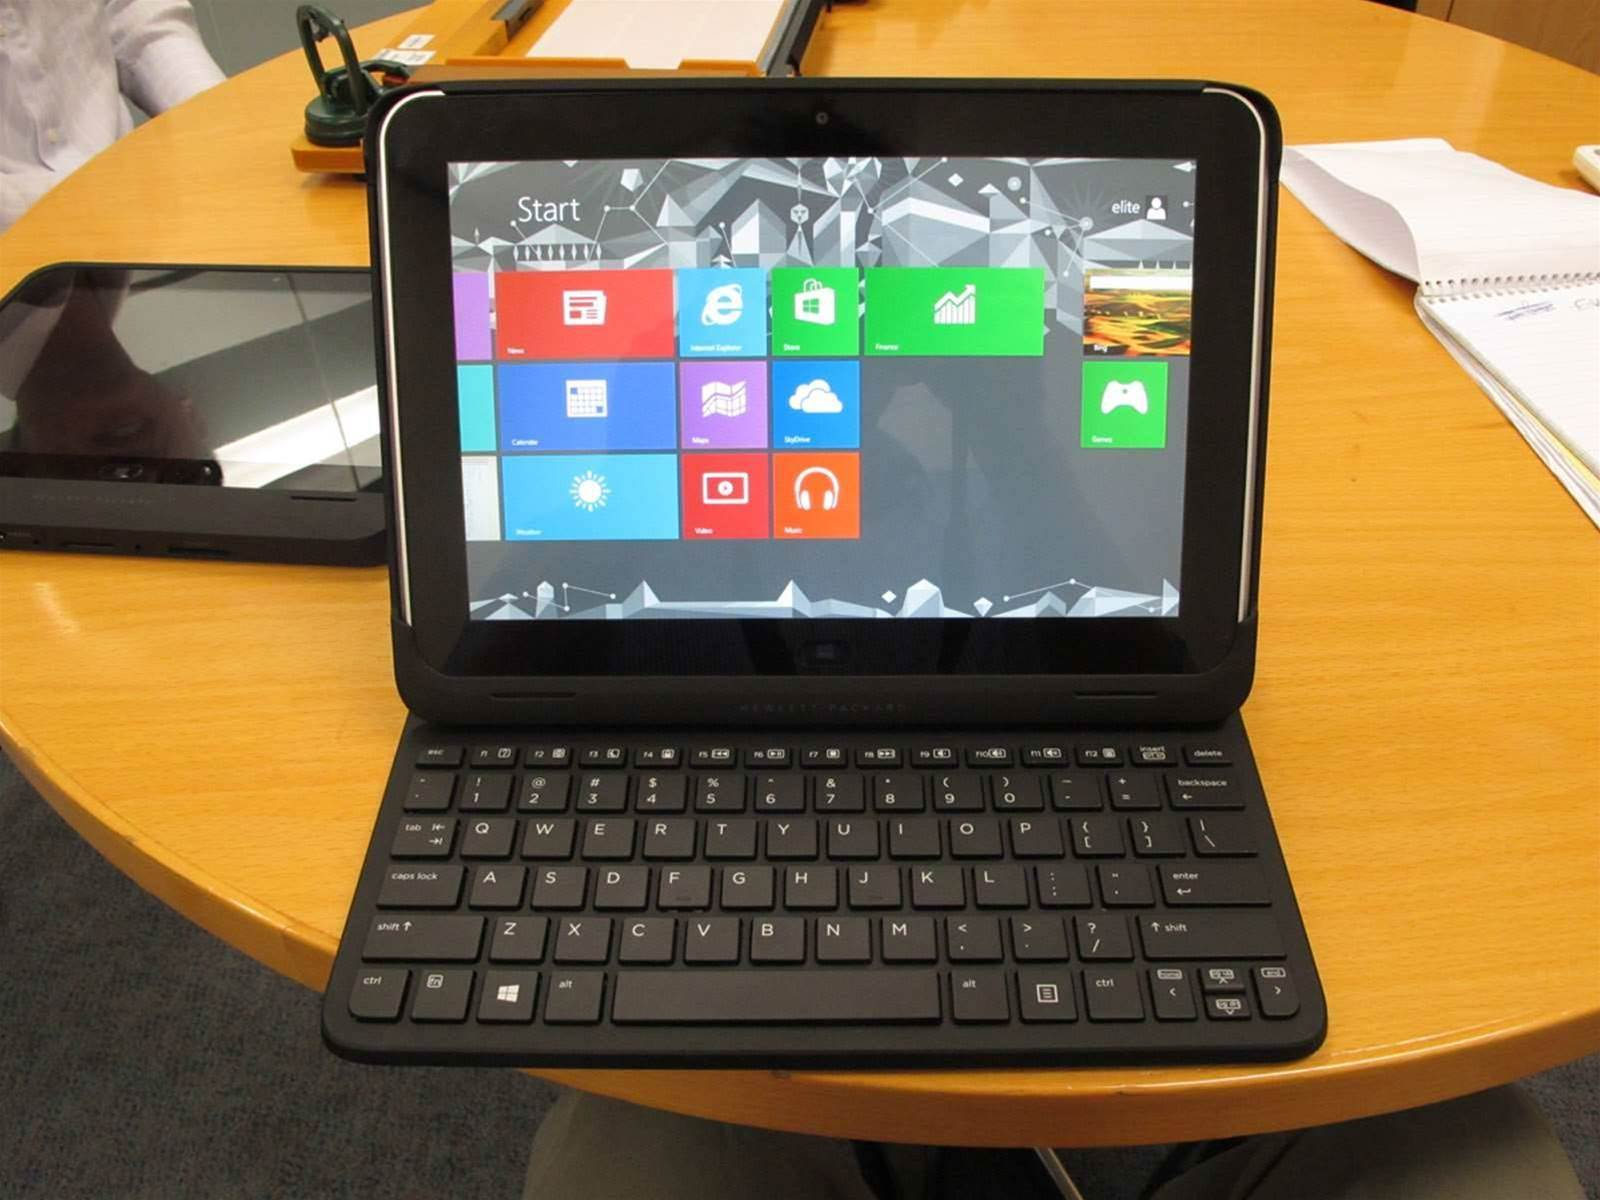 HP's ElitePad 900: how it's different to the Surface Pro